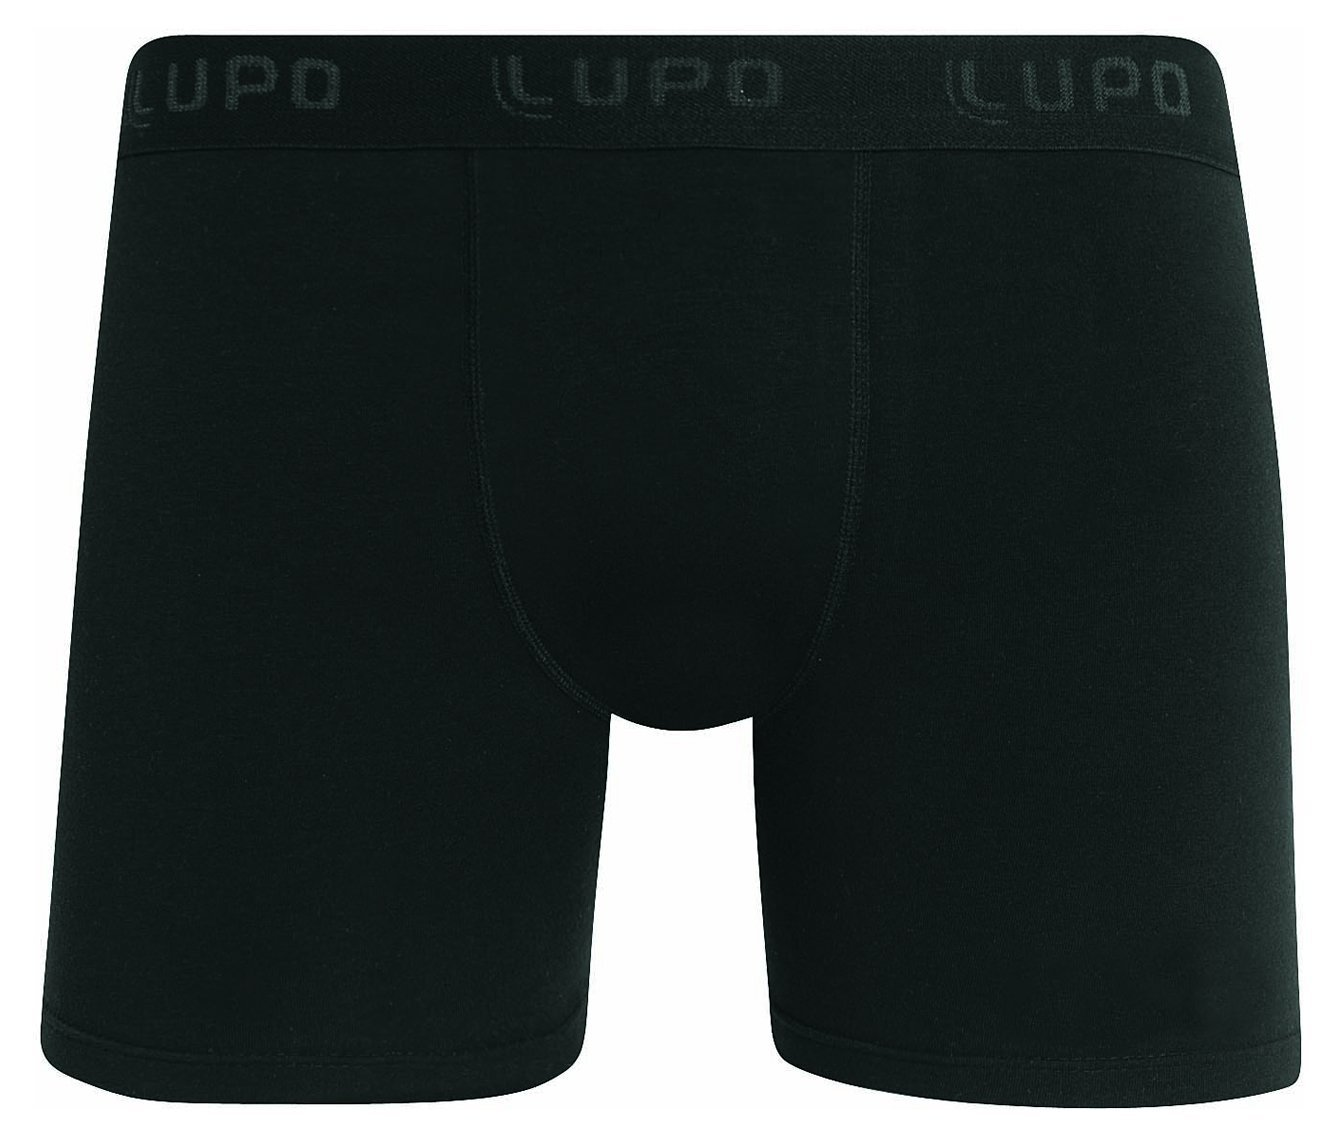 Lupo Men's Essential Stretch Cotton Boxer Brief Underwear (Pack of 3), Black, Large by Lupo